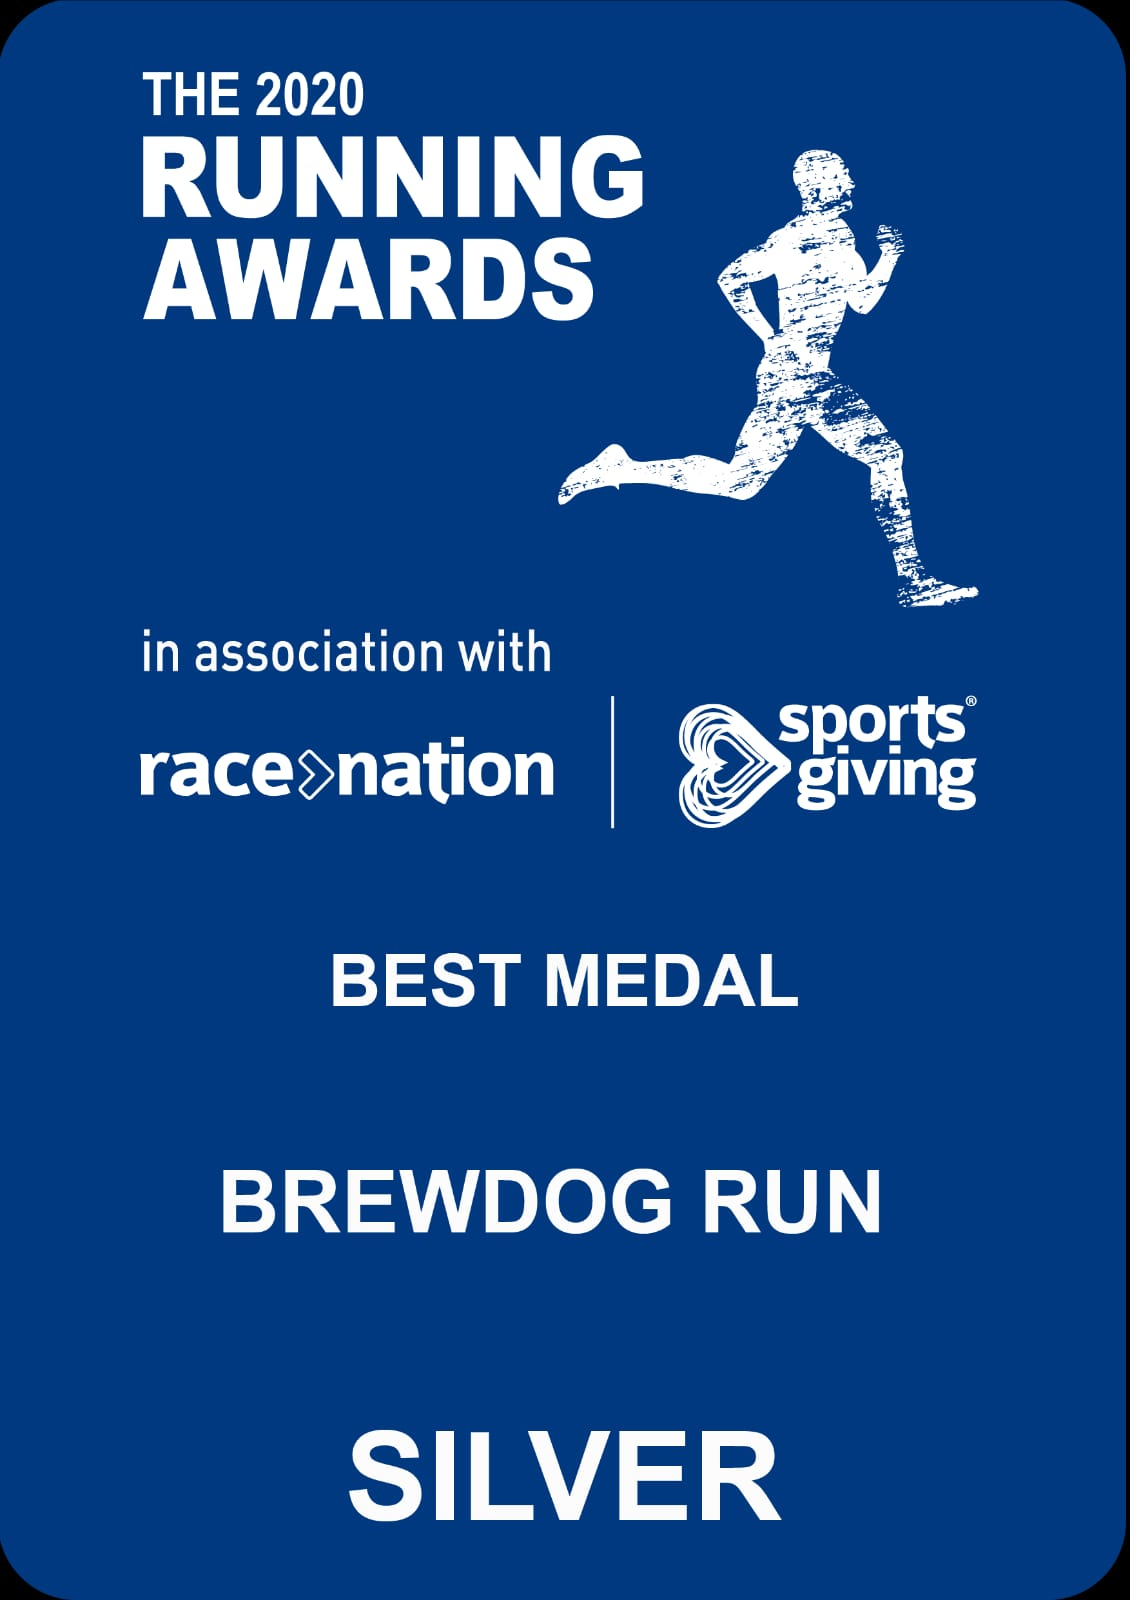 Running Awards 2020 - Silver Medal.jpg